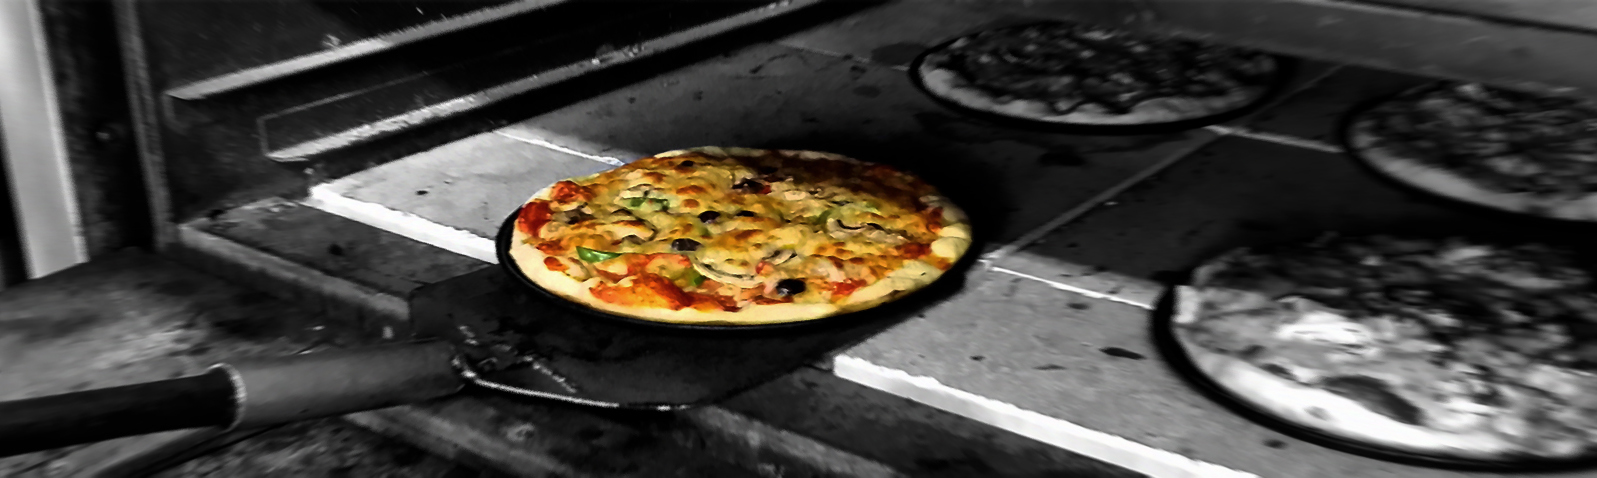 pizza oven image